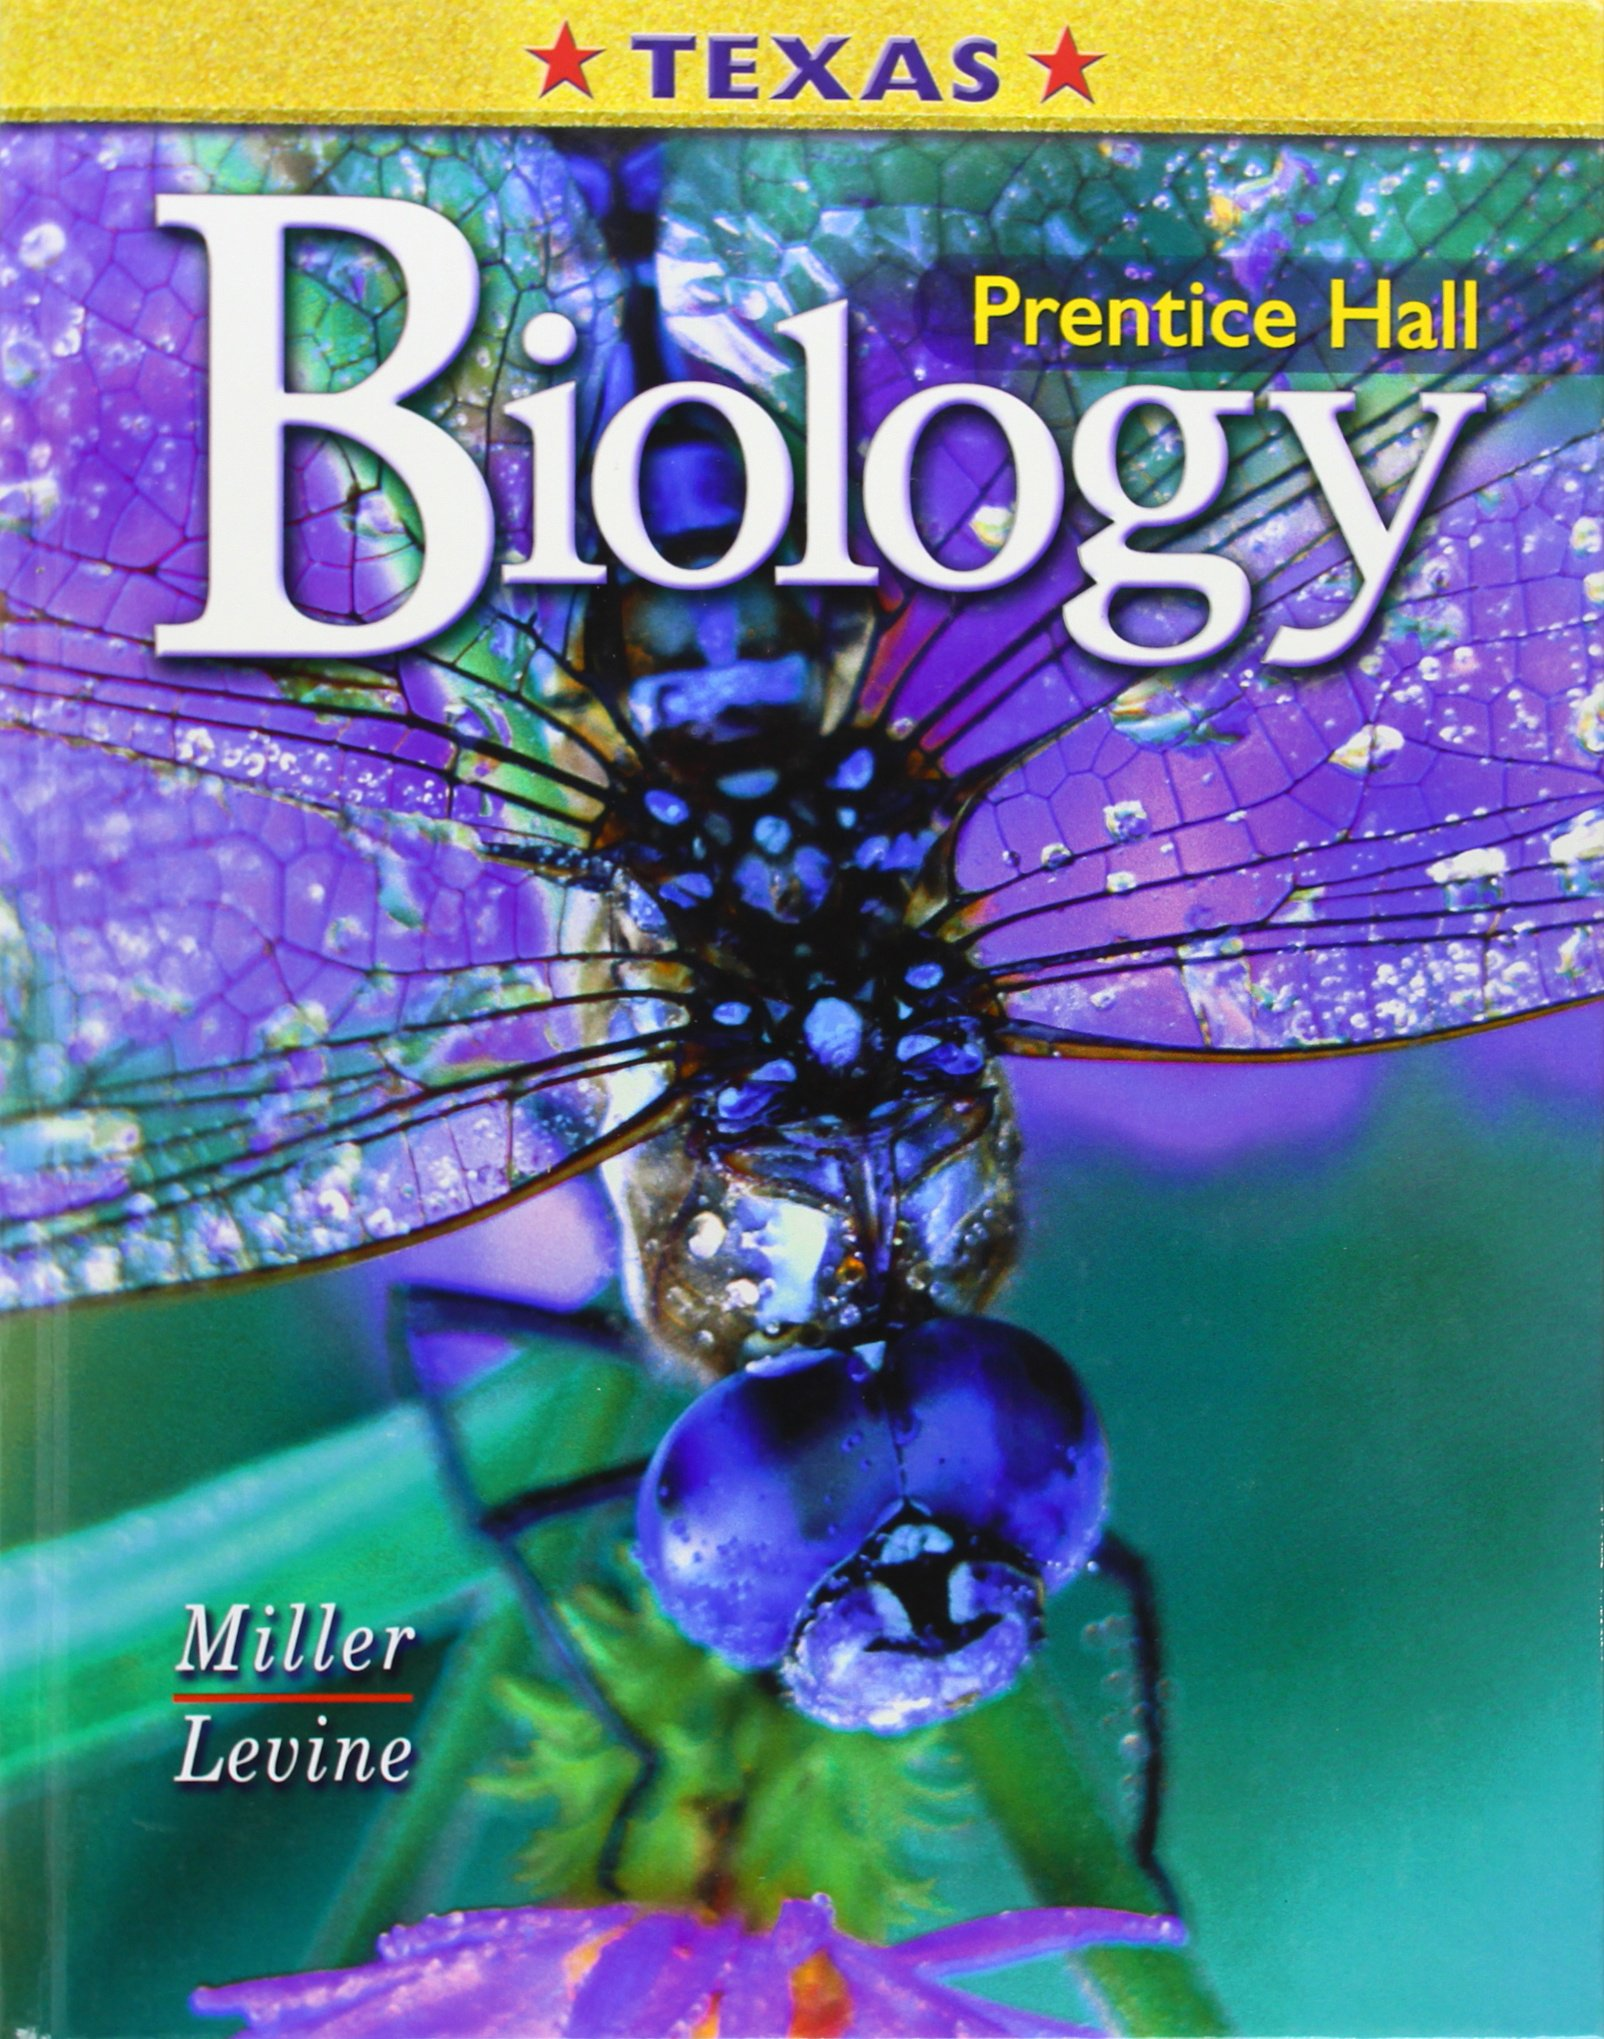 Biology Textbook Online Prentice Hall Prentice Hall Biology Texas